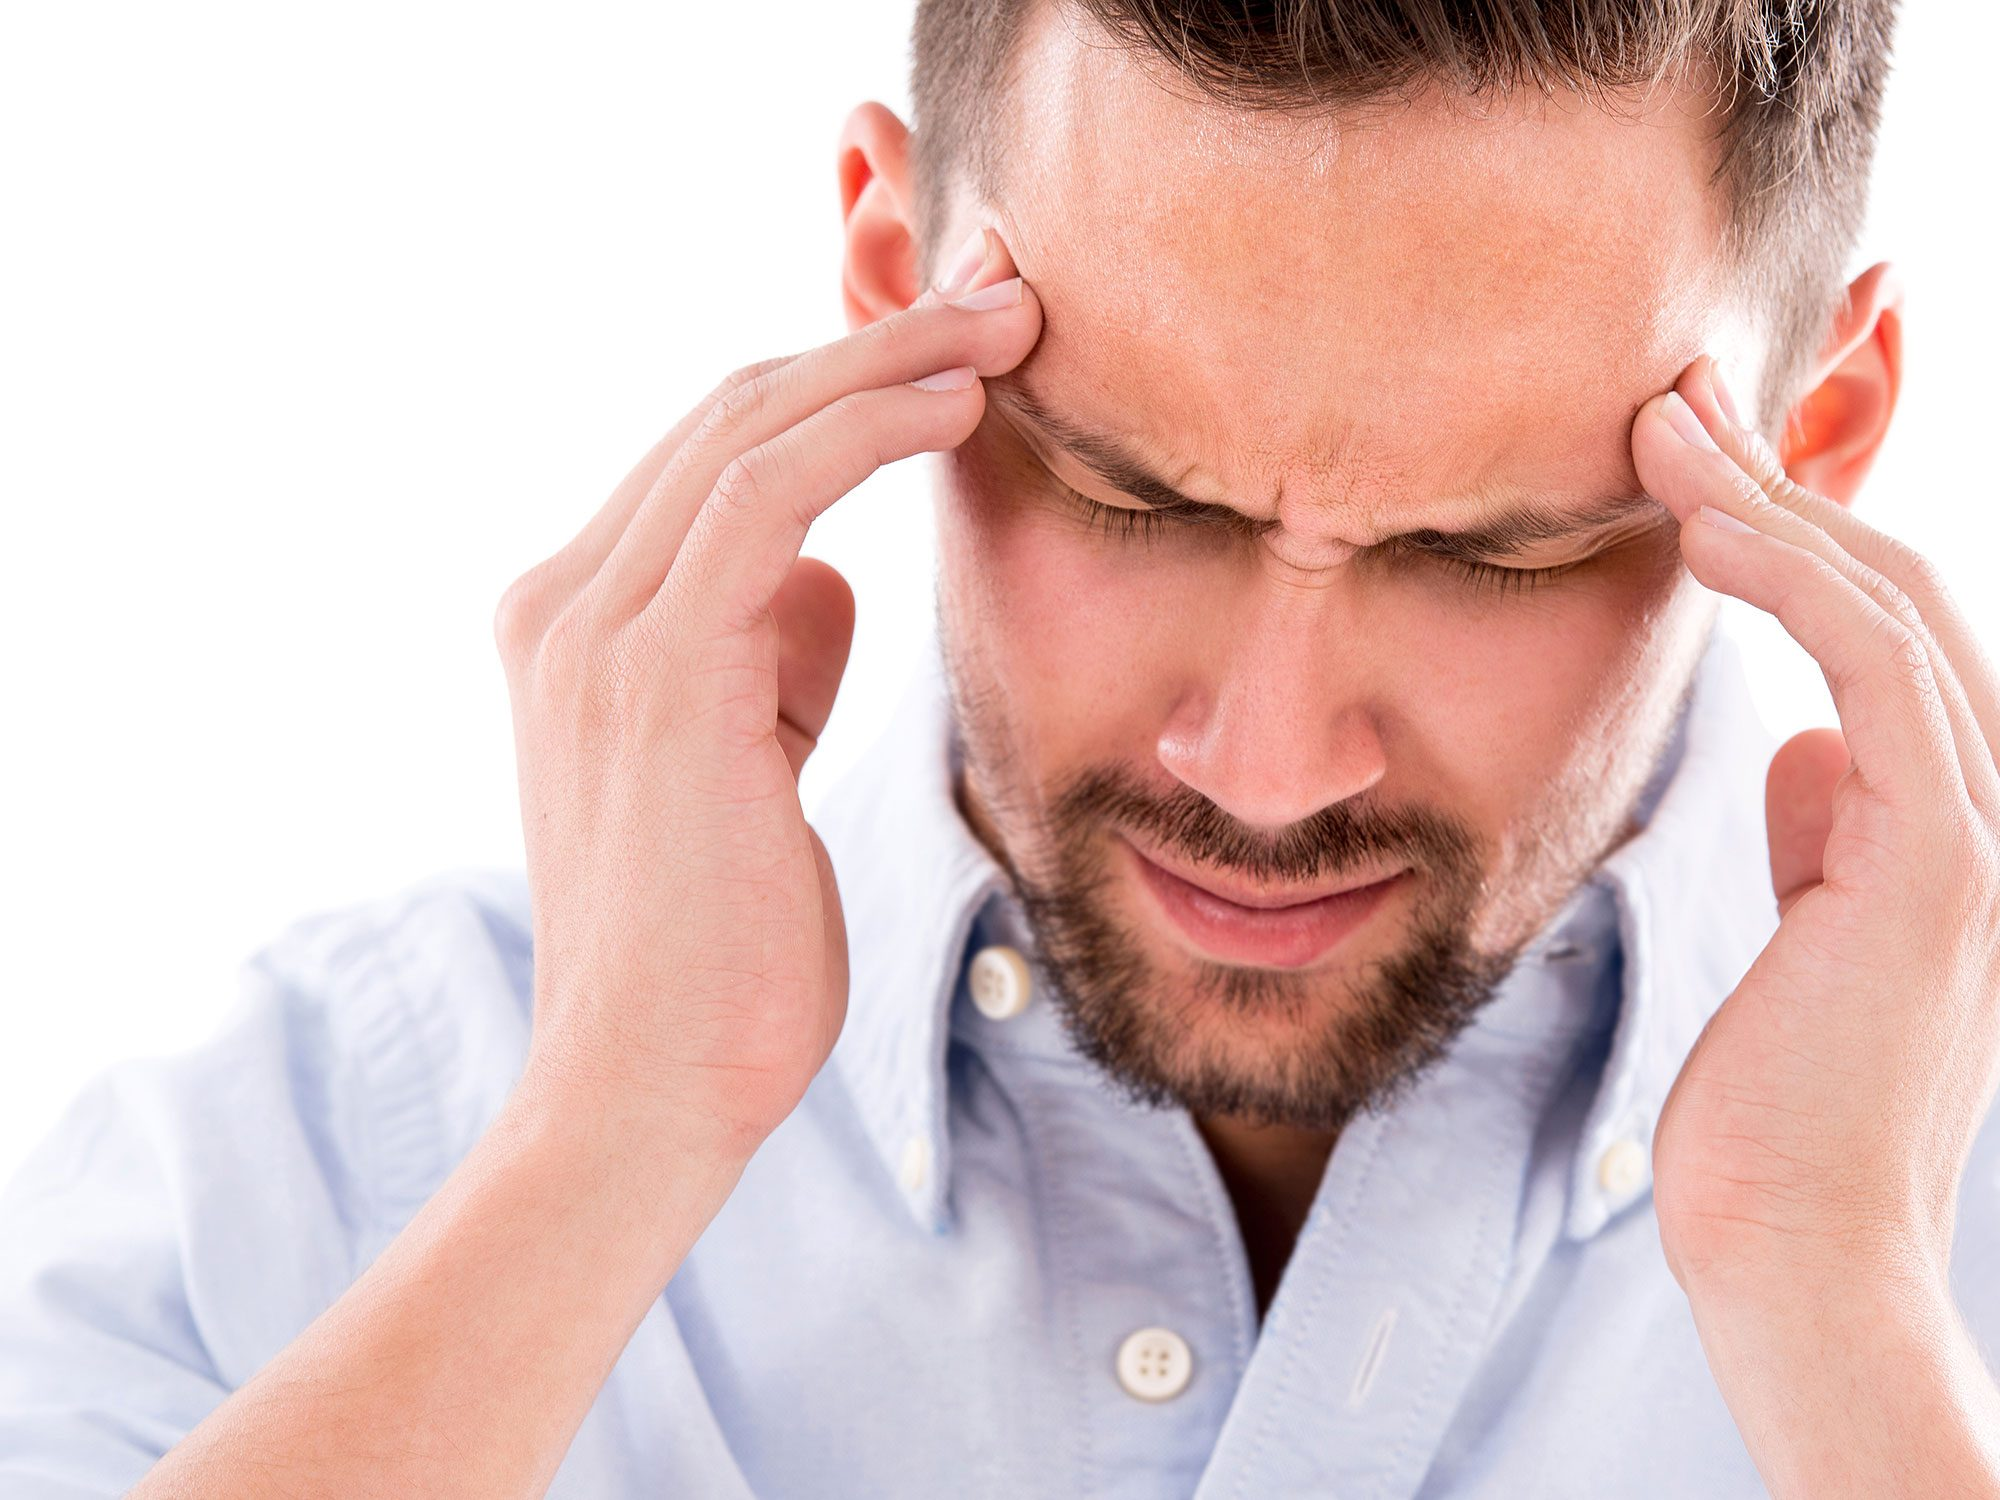 9 Different Types of Headaches—and How to Treat Them